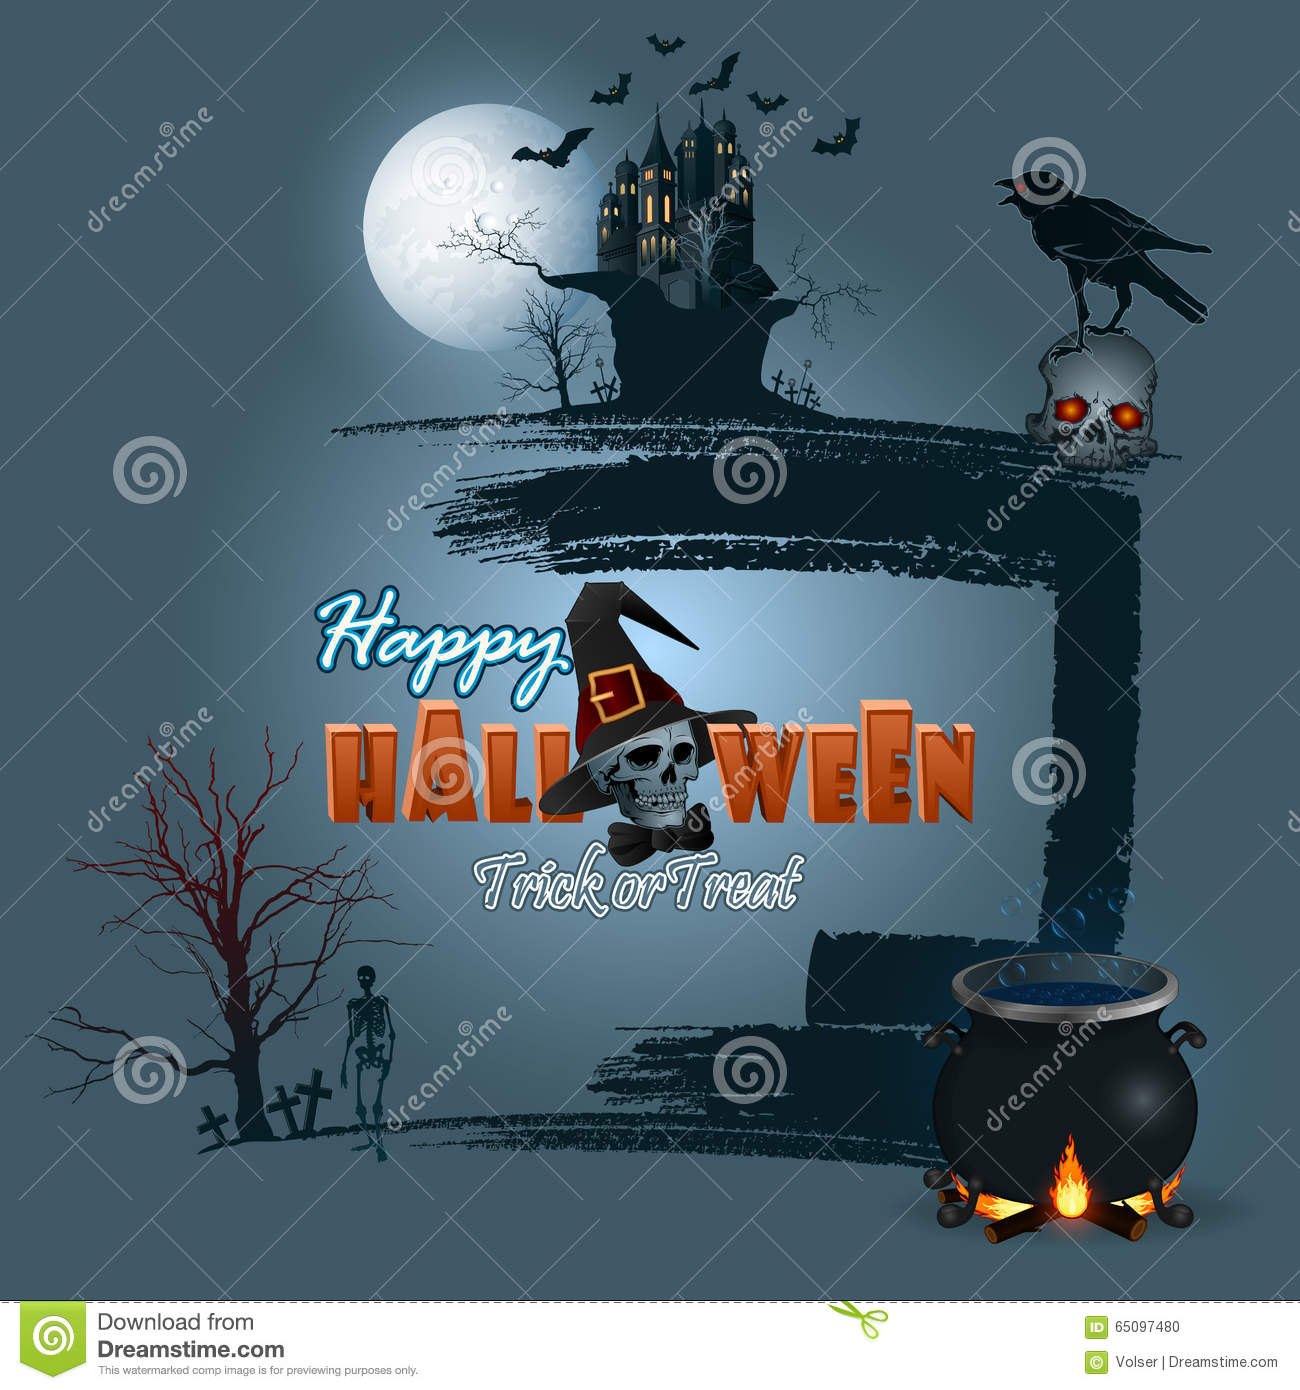 Halloween, Holidays, Template With Scary Moonlight Scene Stock ...